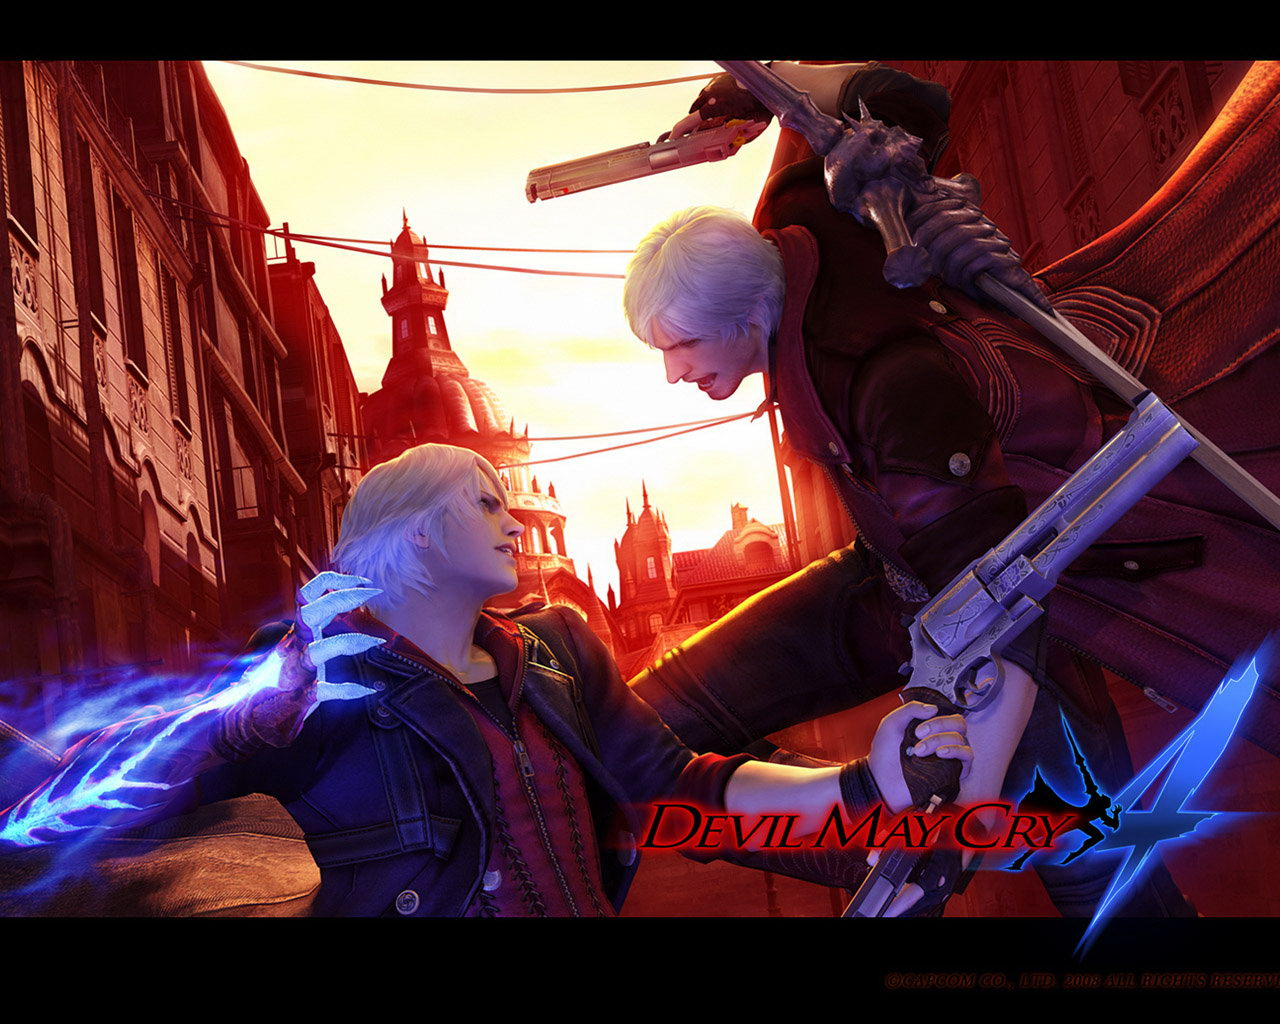 cg character: devil may cry 4 wallpapers